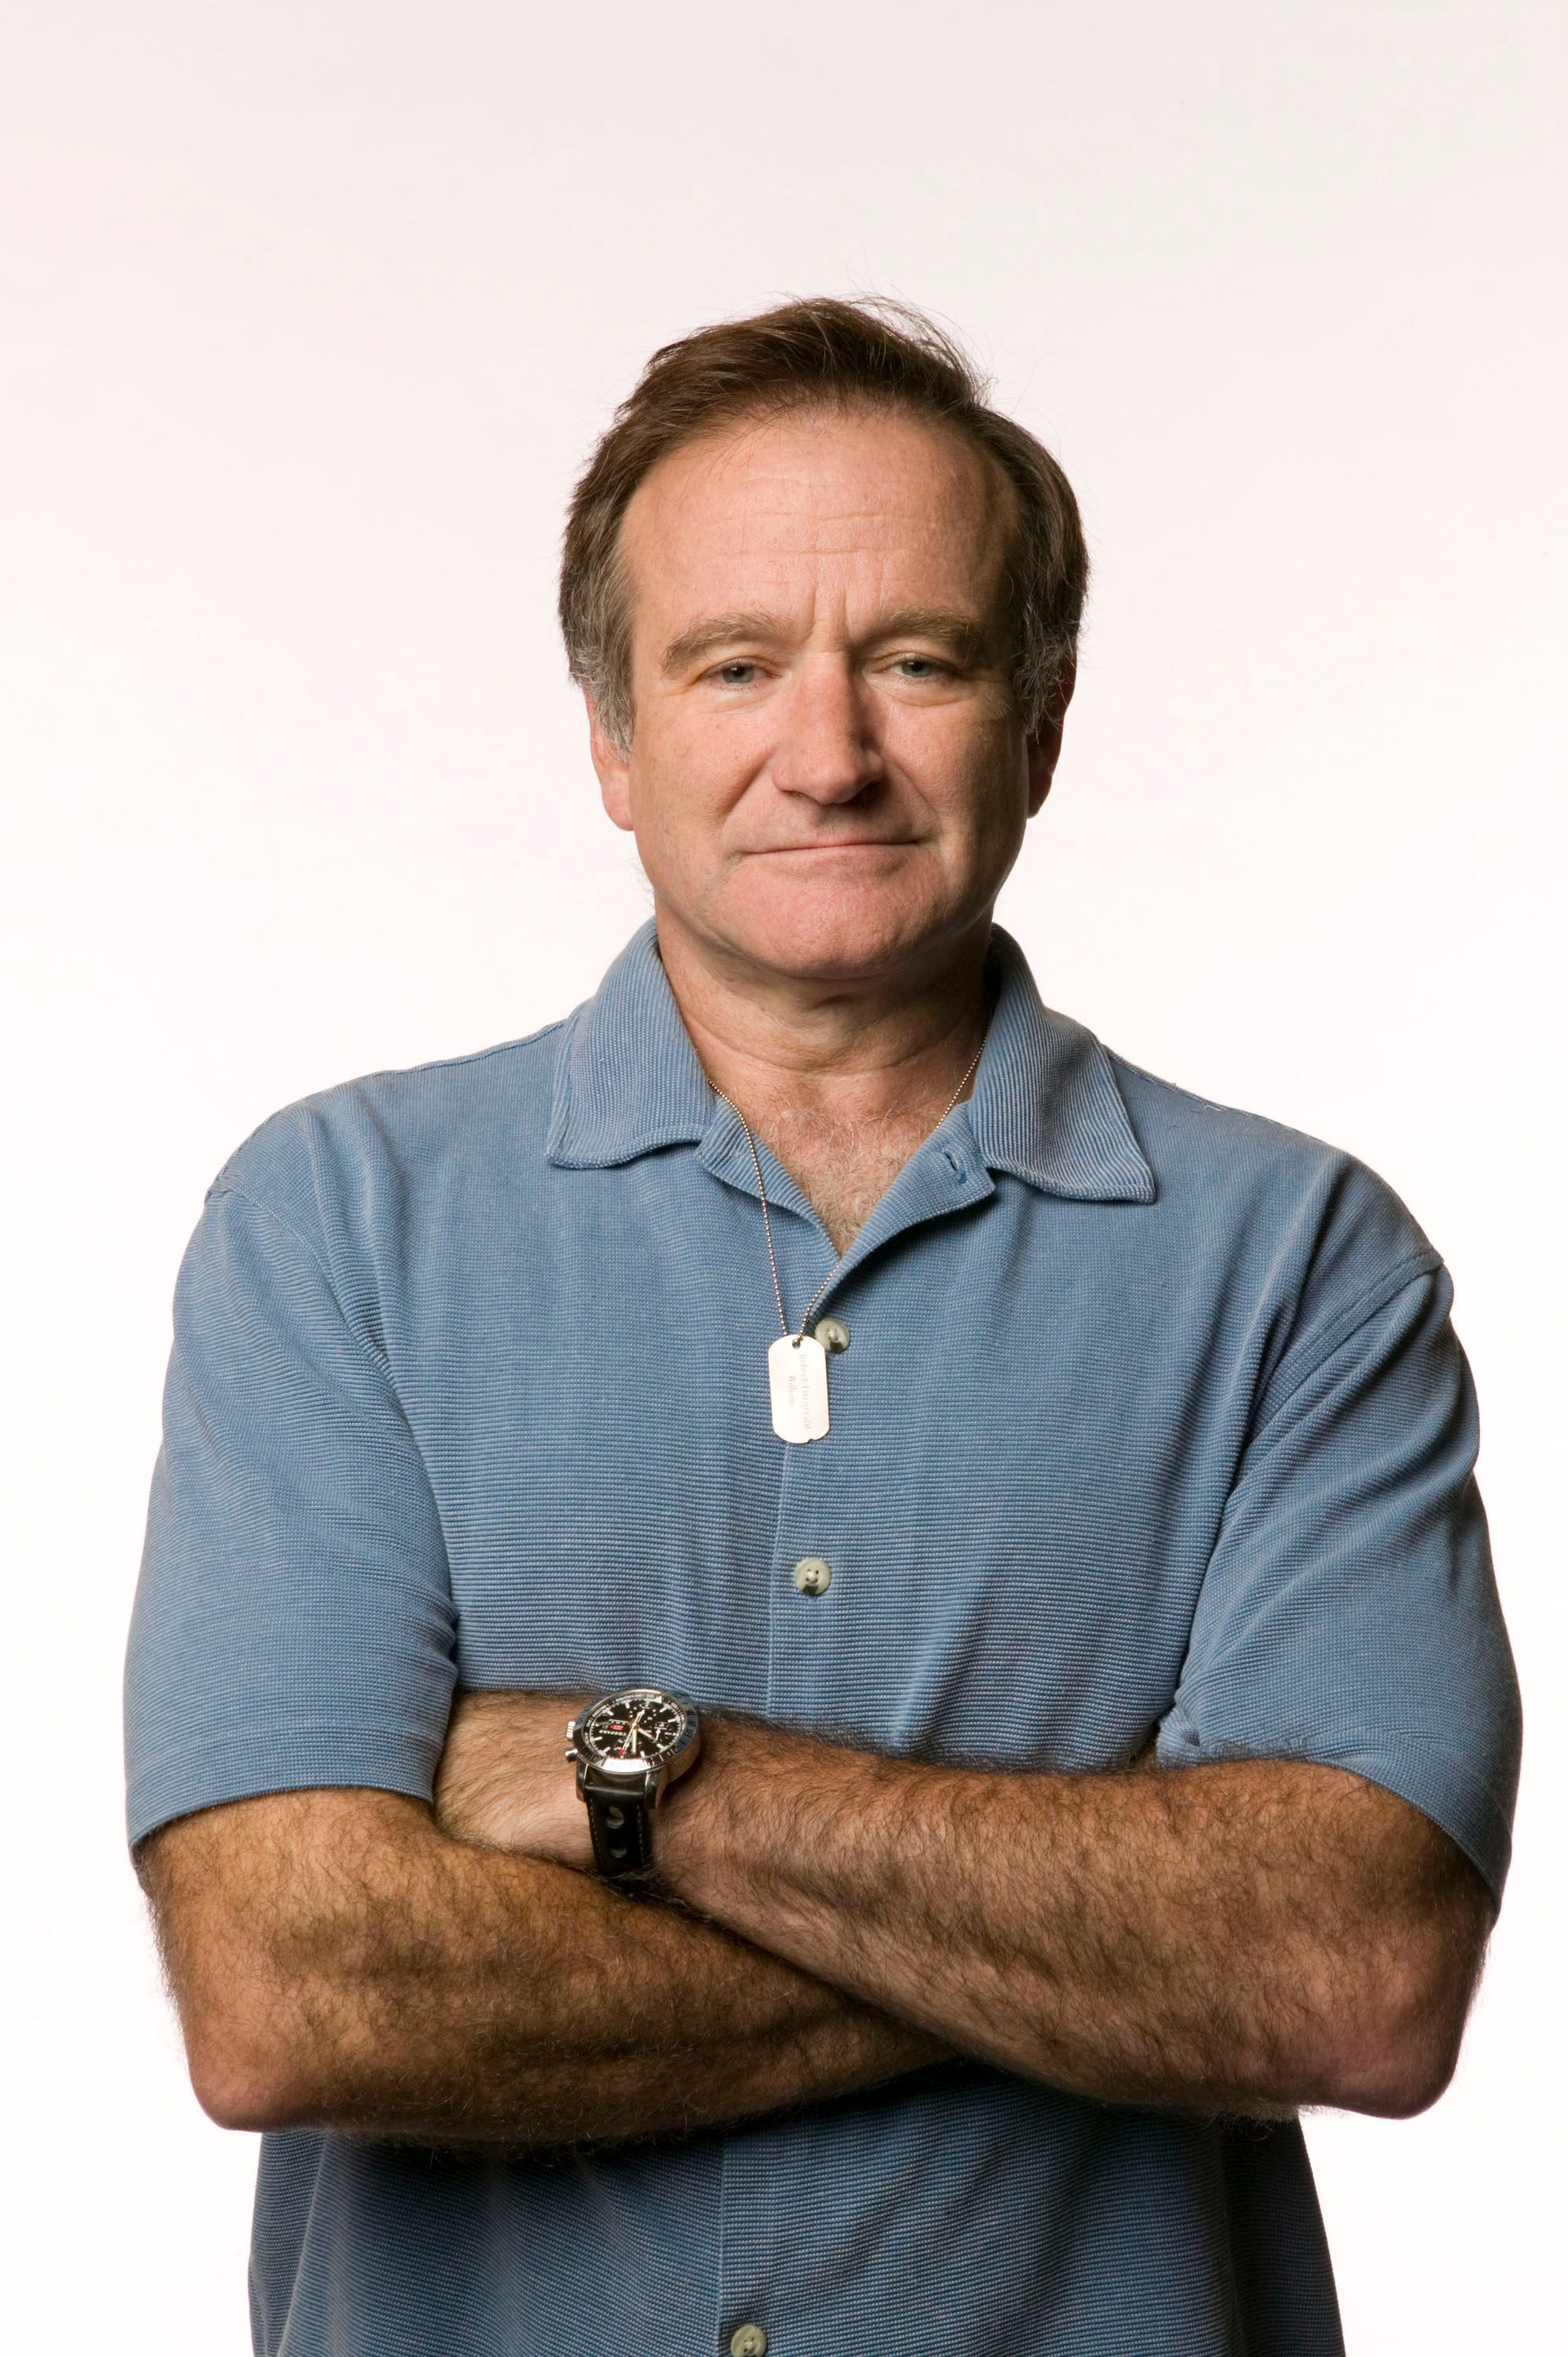 Late Actor Robin Williams in a promotional portrait for the Search for the Cause campaign, which raises funds for cancer research on November 21, 2005 | Photo: Getty Images